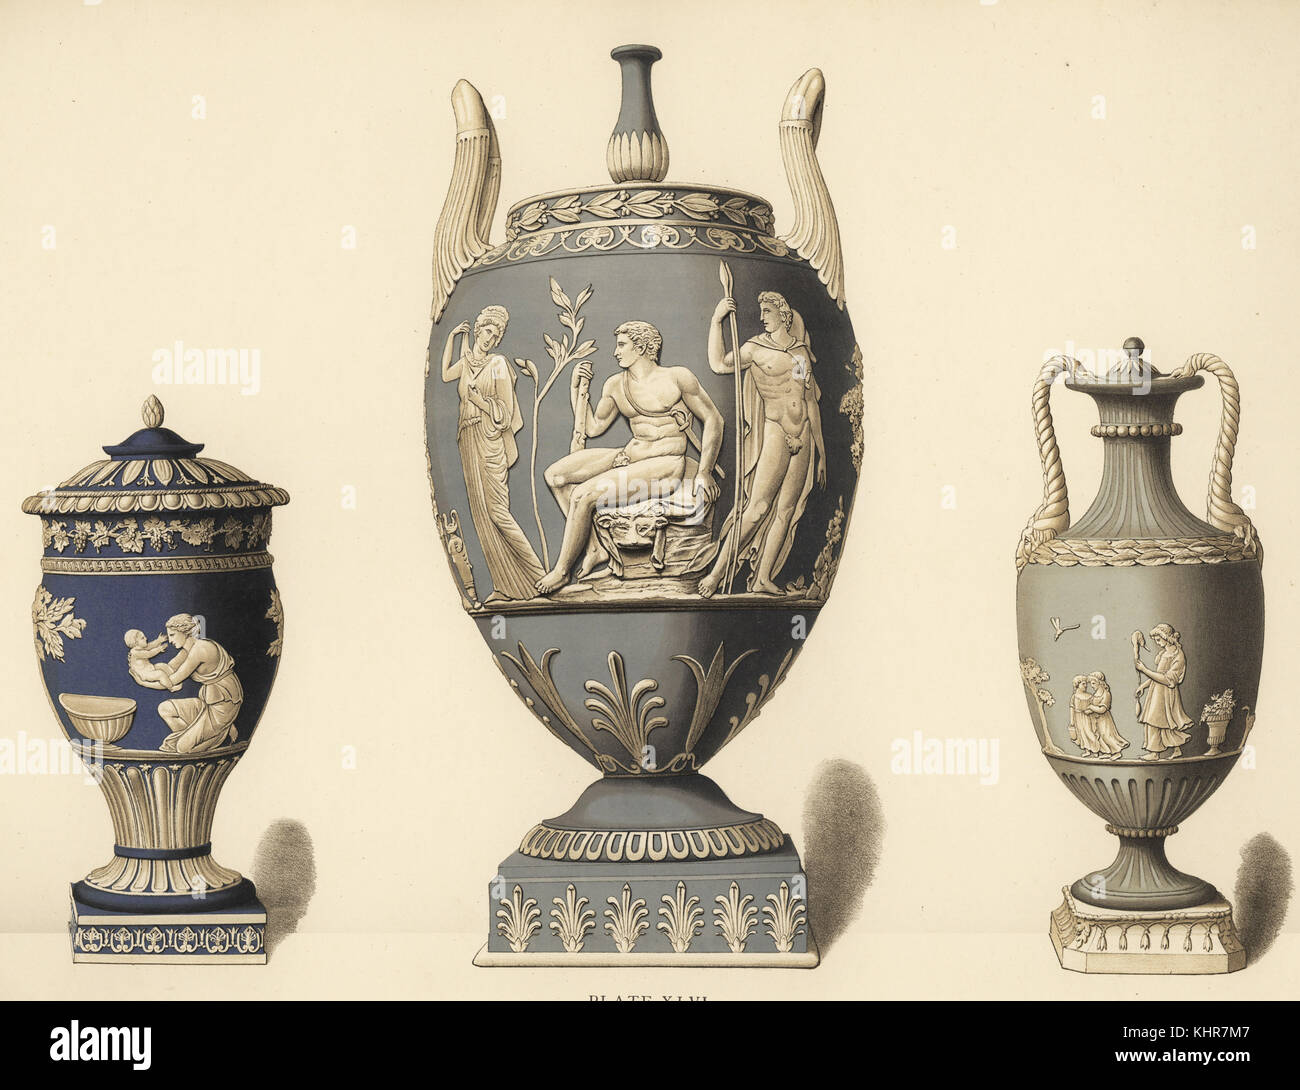 Vase with reliefs of Achilles (L), vase with Hercules in the garden of the Hesperides (C), and vase with reliefs - Stock Image